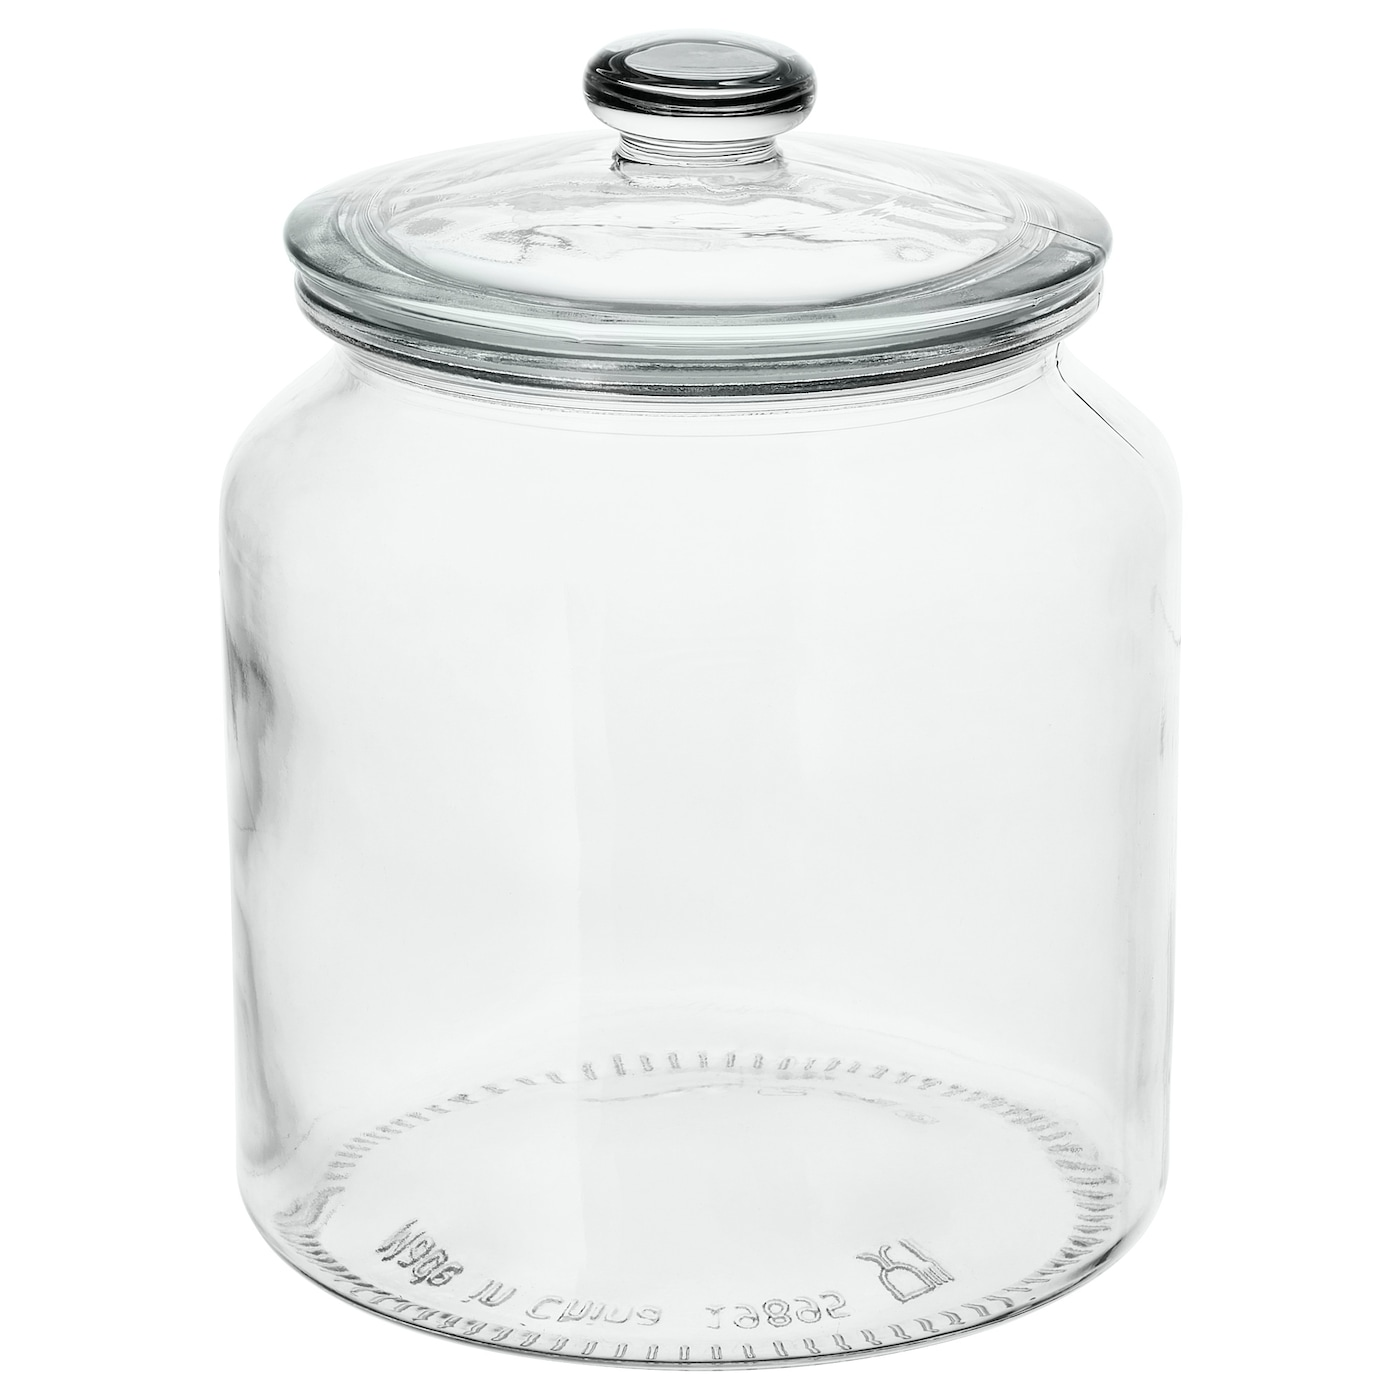 VARDAGEN Jar with lid - clear glass 9.9 l